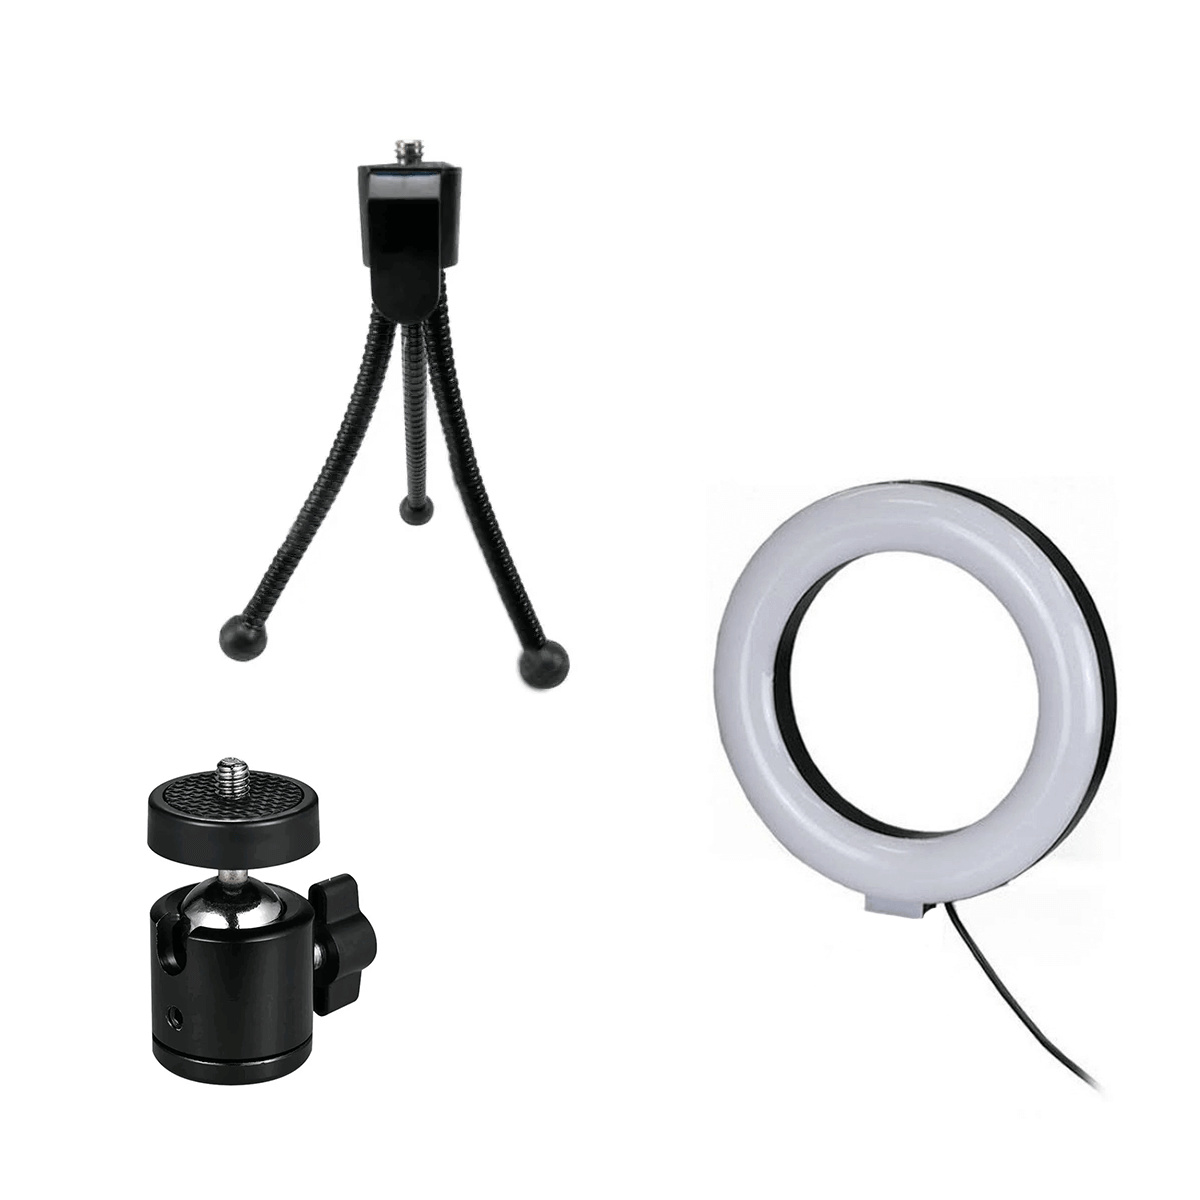 Ring Light de Mesa 16cm Luz de Led para Foto e Vídeo  - Fotolux